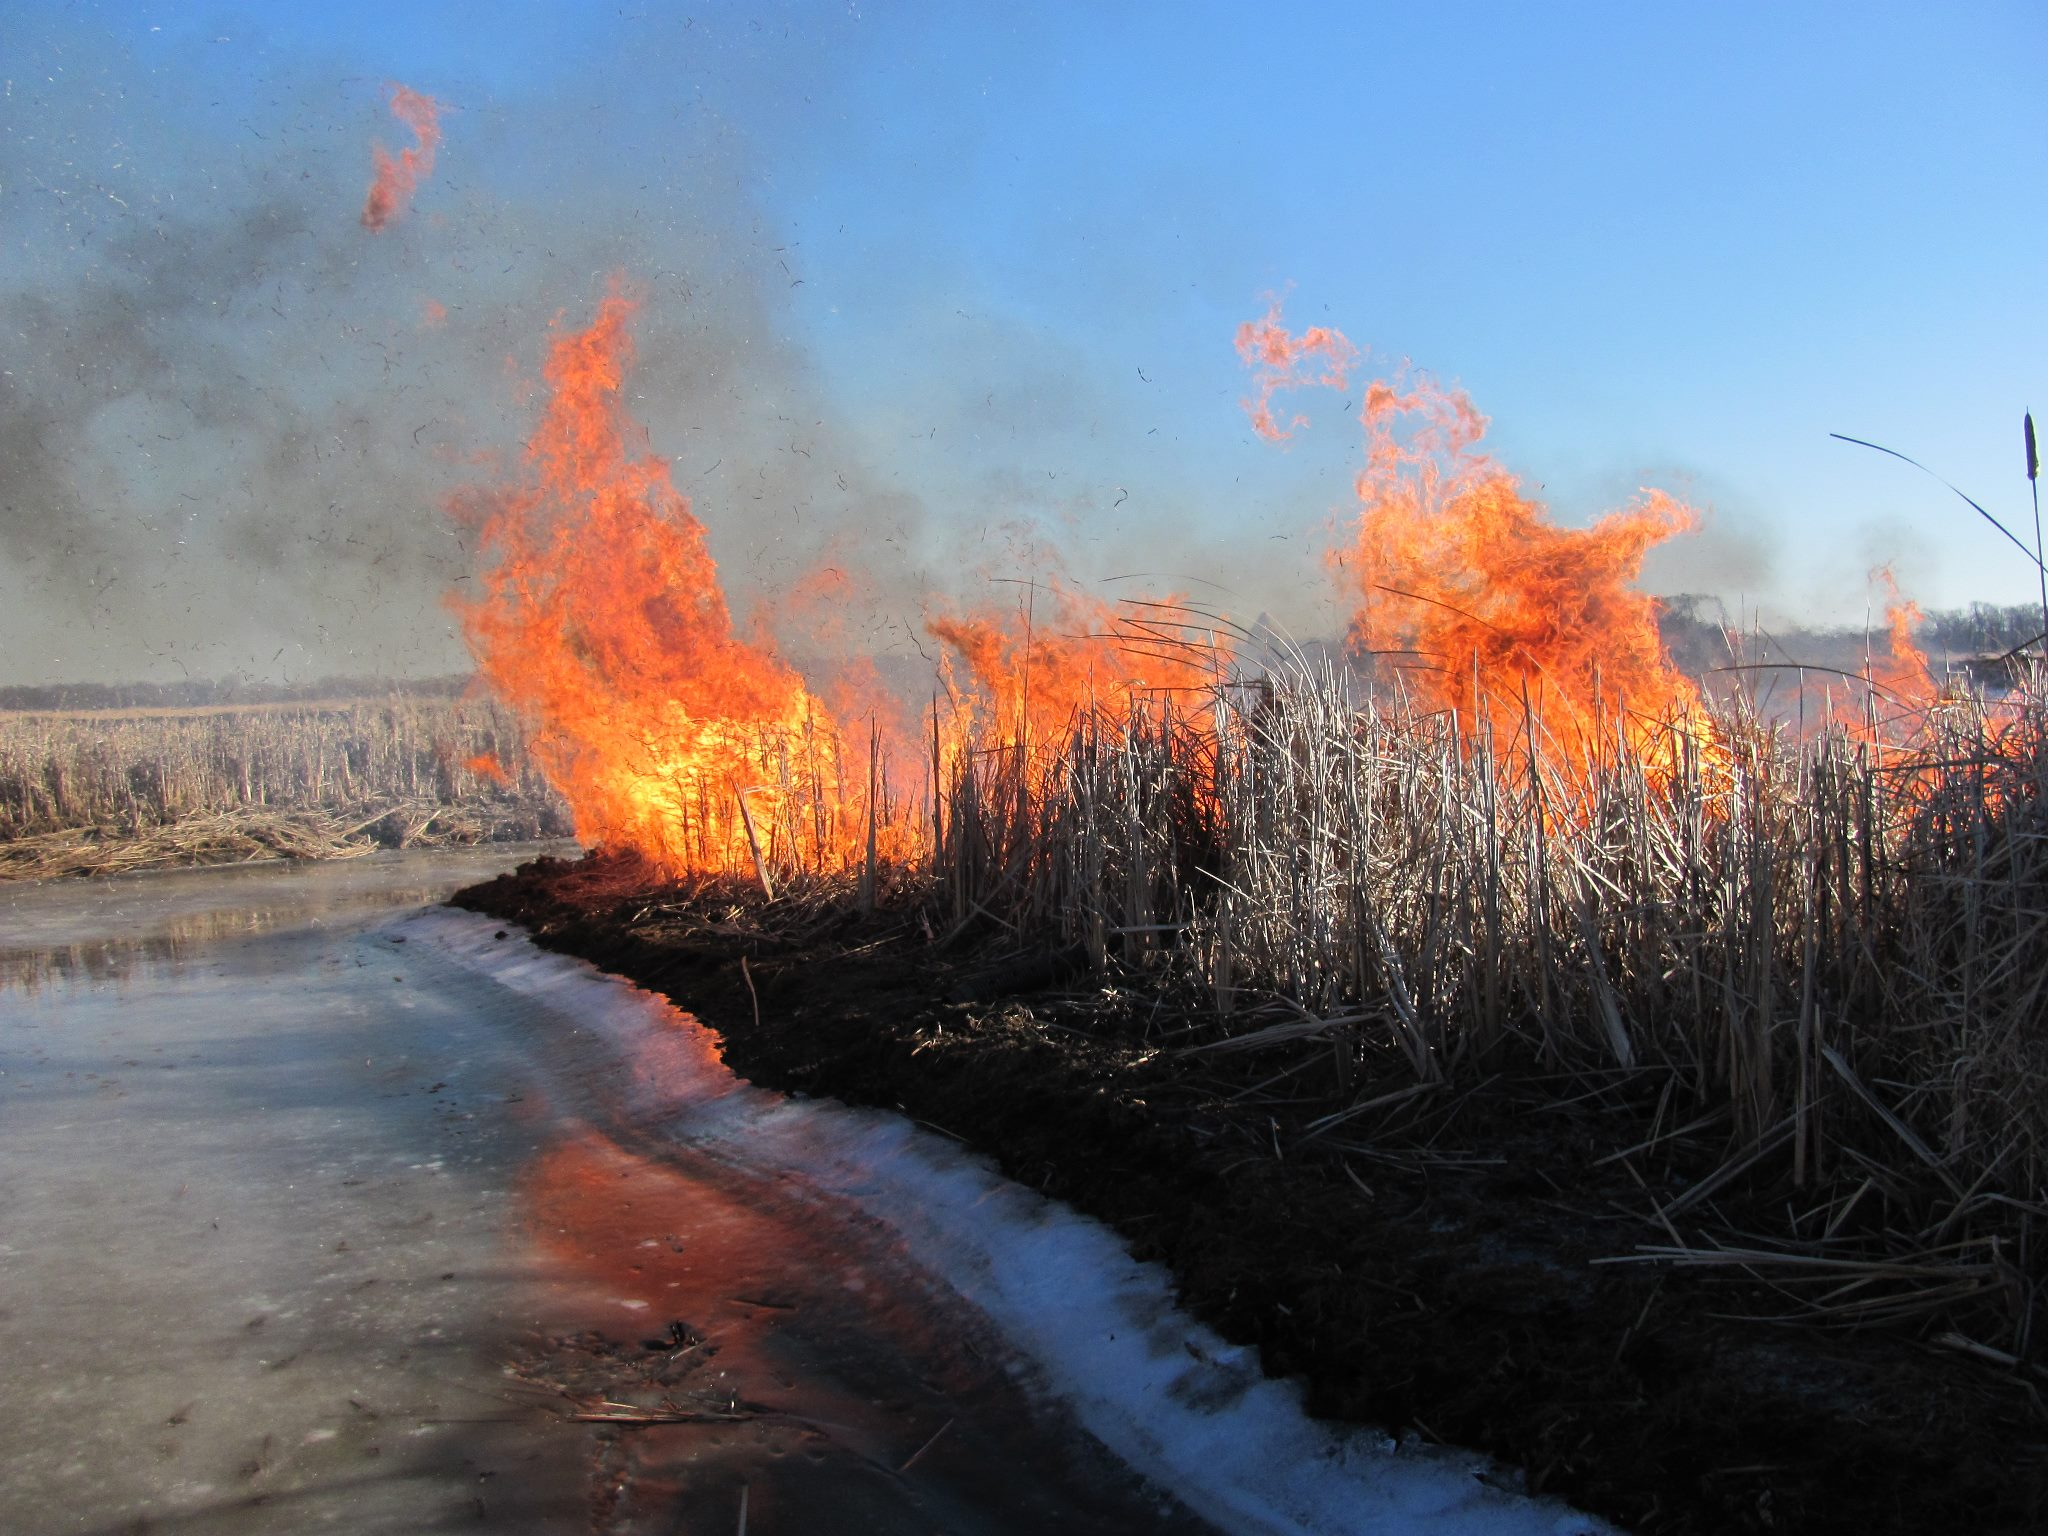 Prescribed burn at Uihlein Waterfowl Production Area. Photo by Sean Sallmann/USFWS. (CC BY 2.0) https://creativecommons.org/licenses/by/2.0/